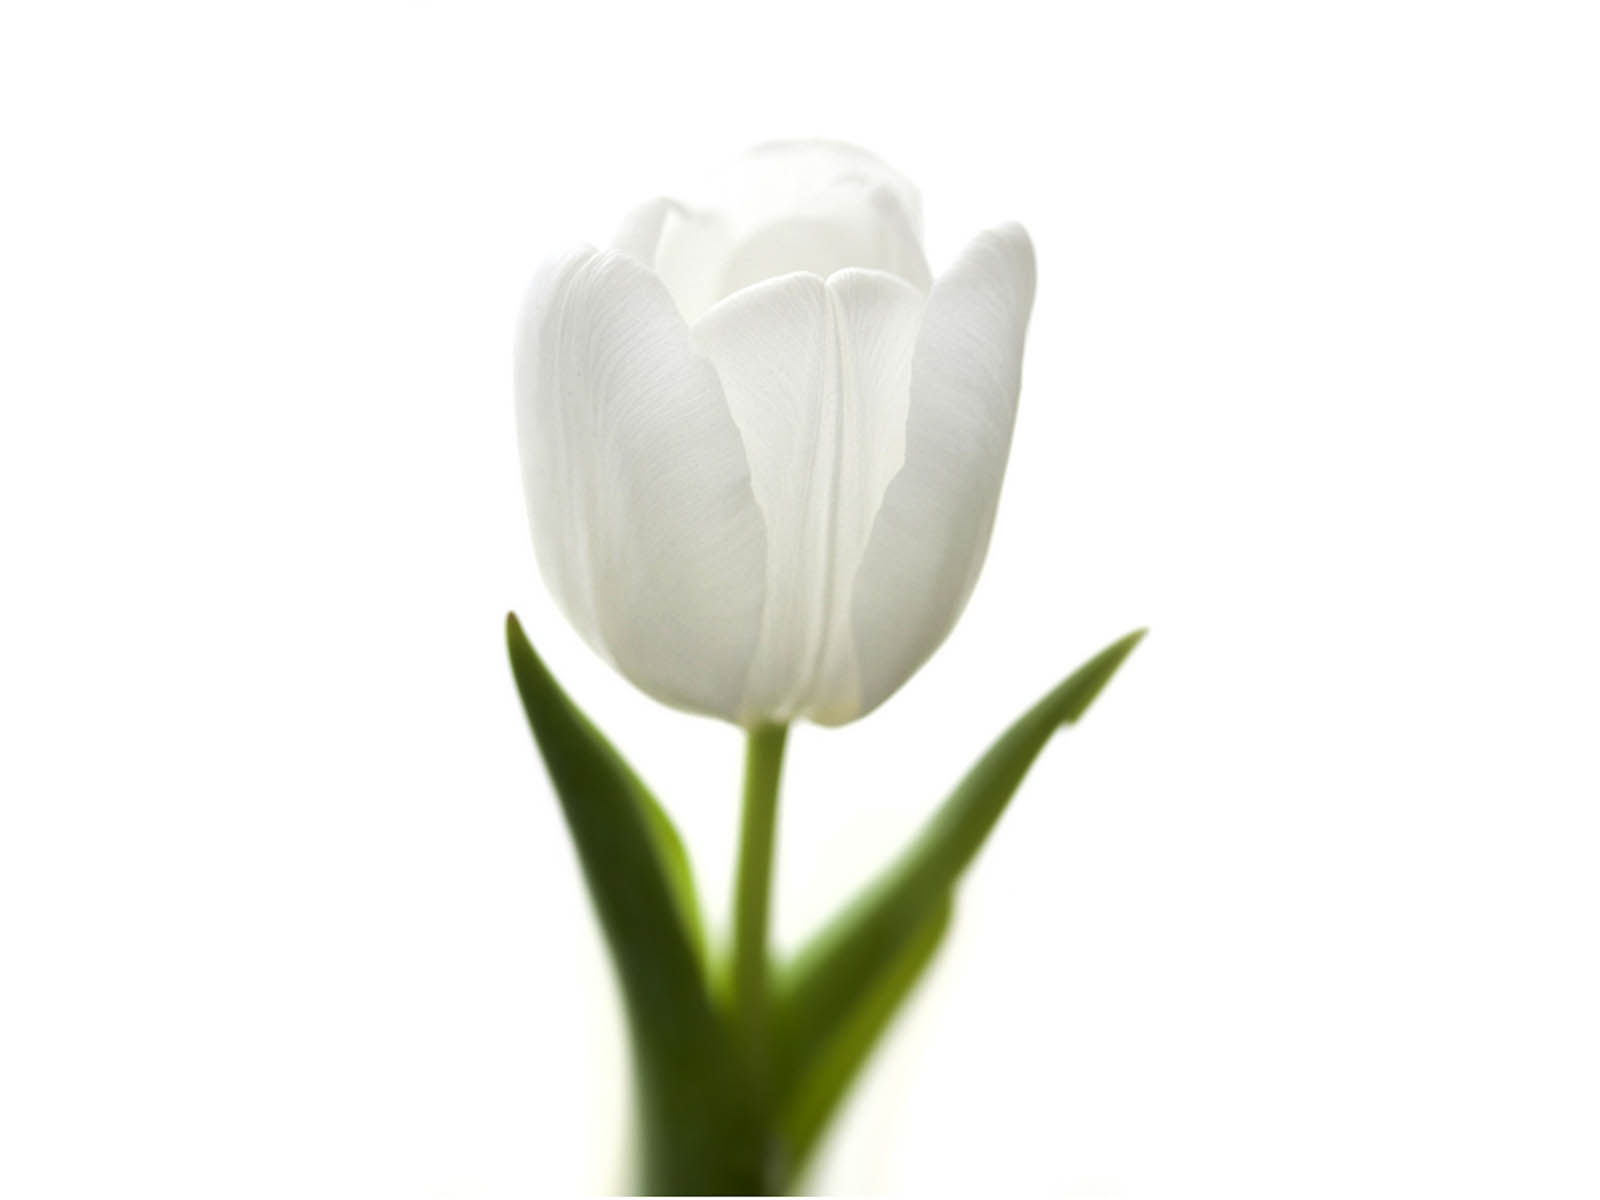 White tulips 19 high resolution wallpaper hdflowerwallpaper white tulips free wallpaper mightylinksfo